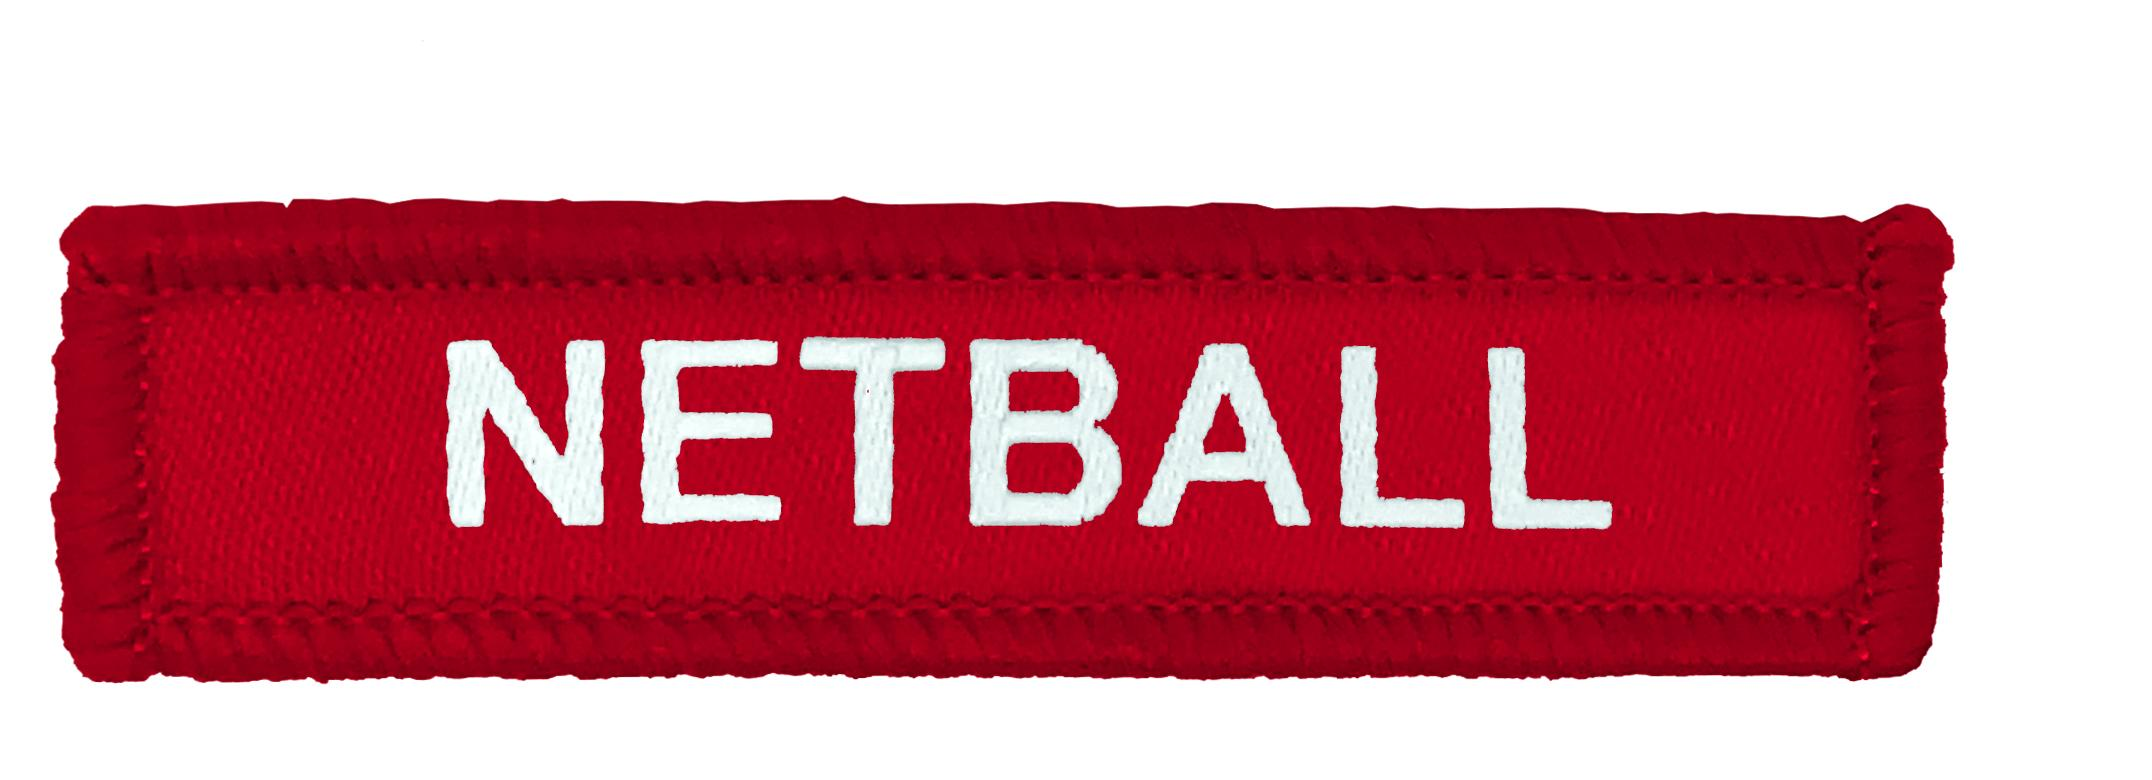 Red Woven Netball Badge